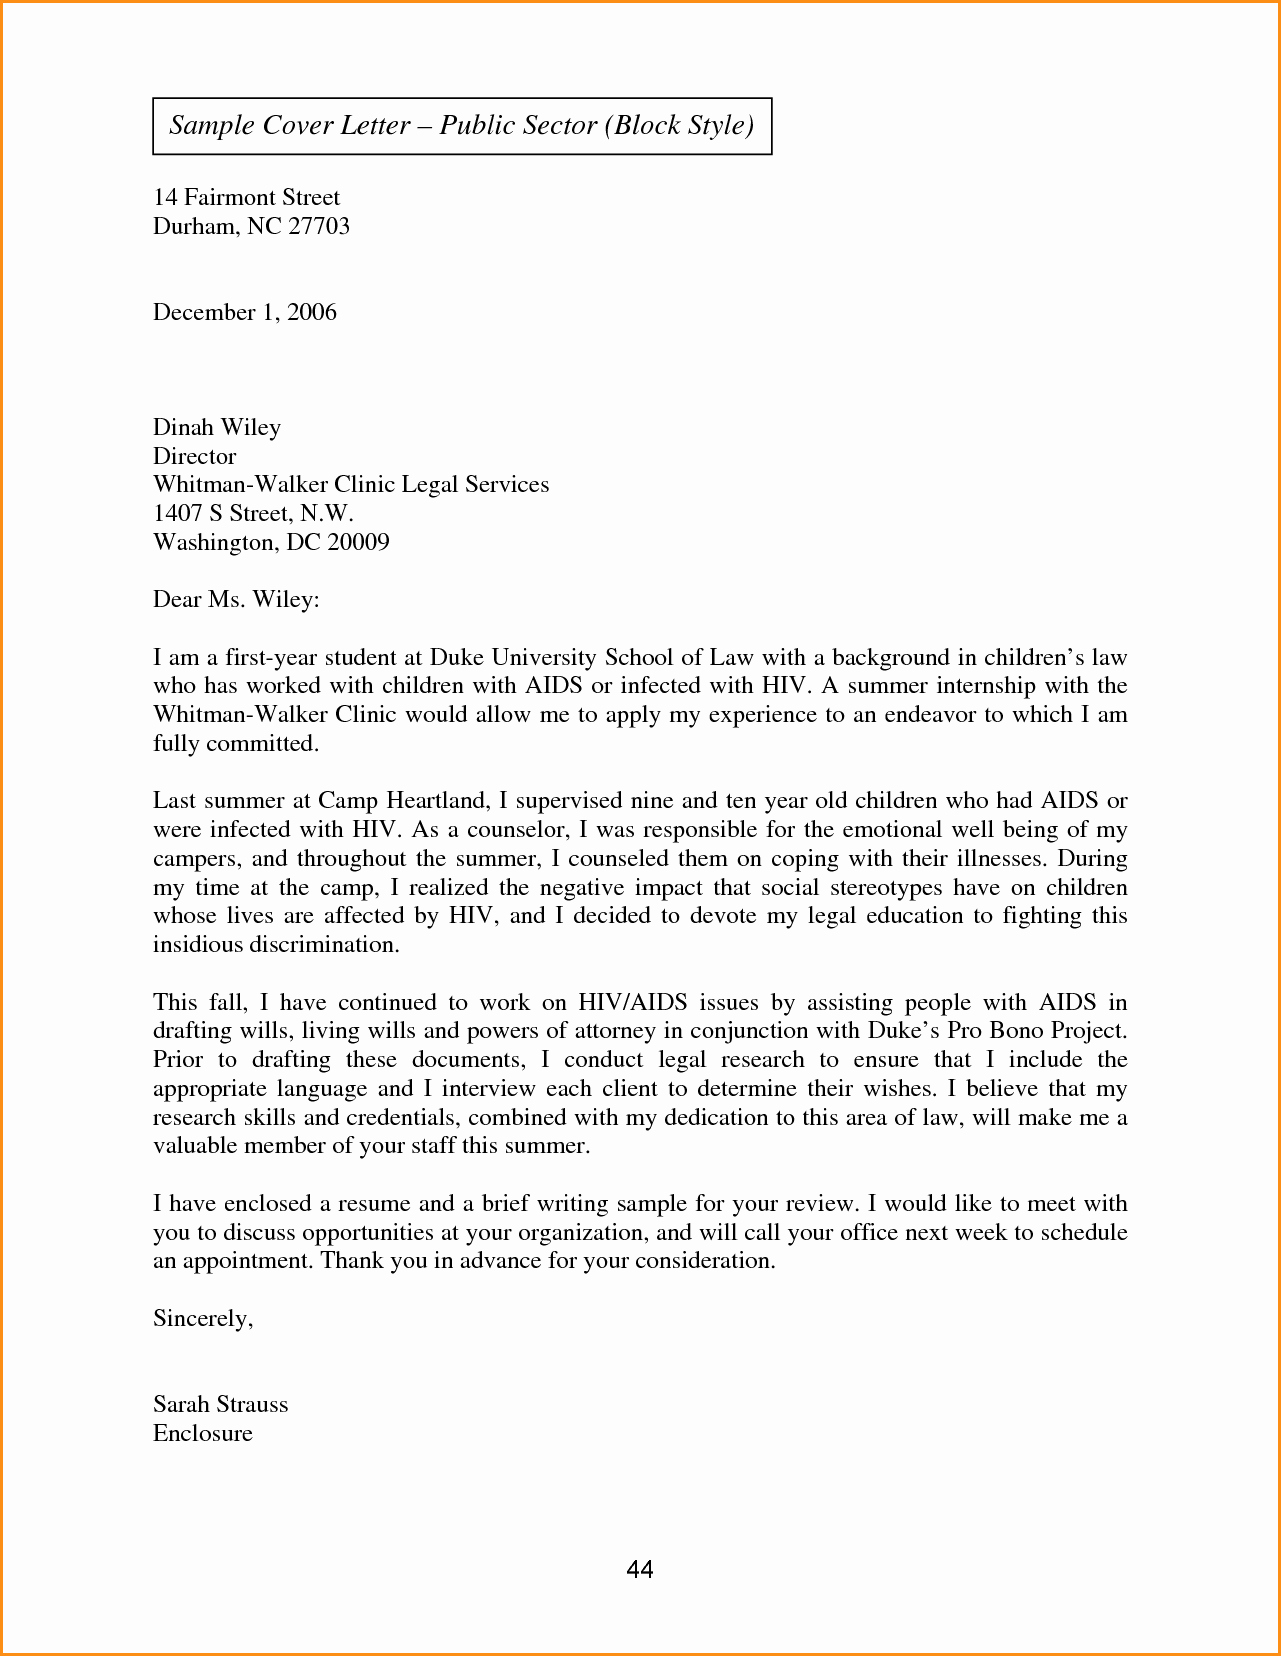 Business Letter format Microsoft Word Inspirational 9 Full Block Business Letter Sample